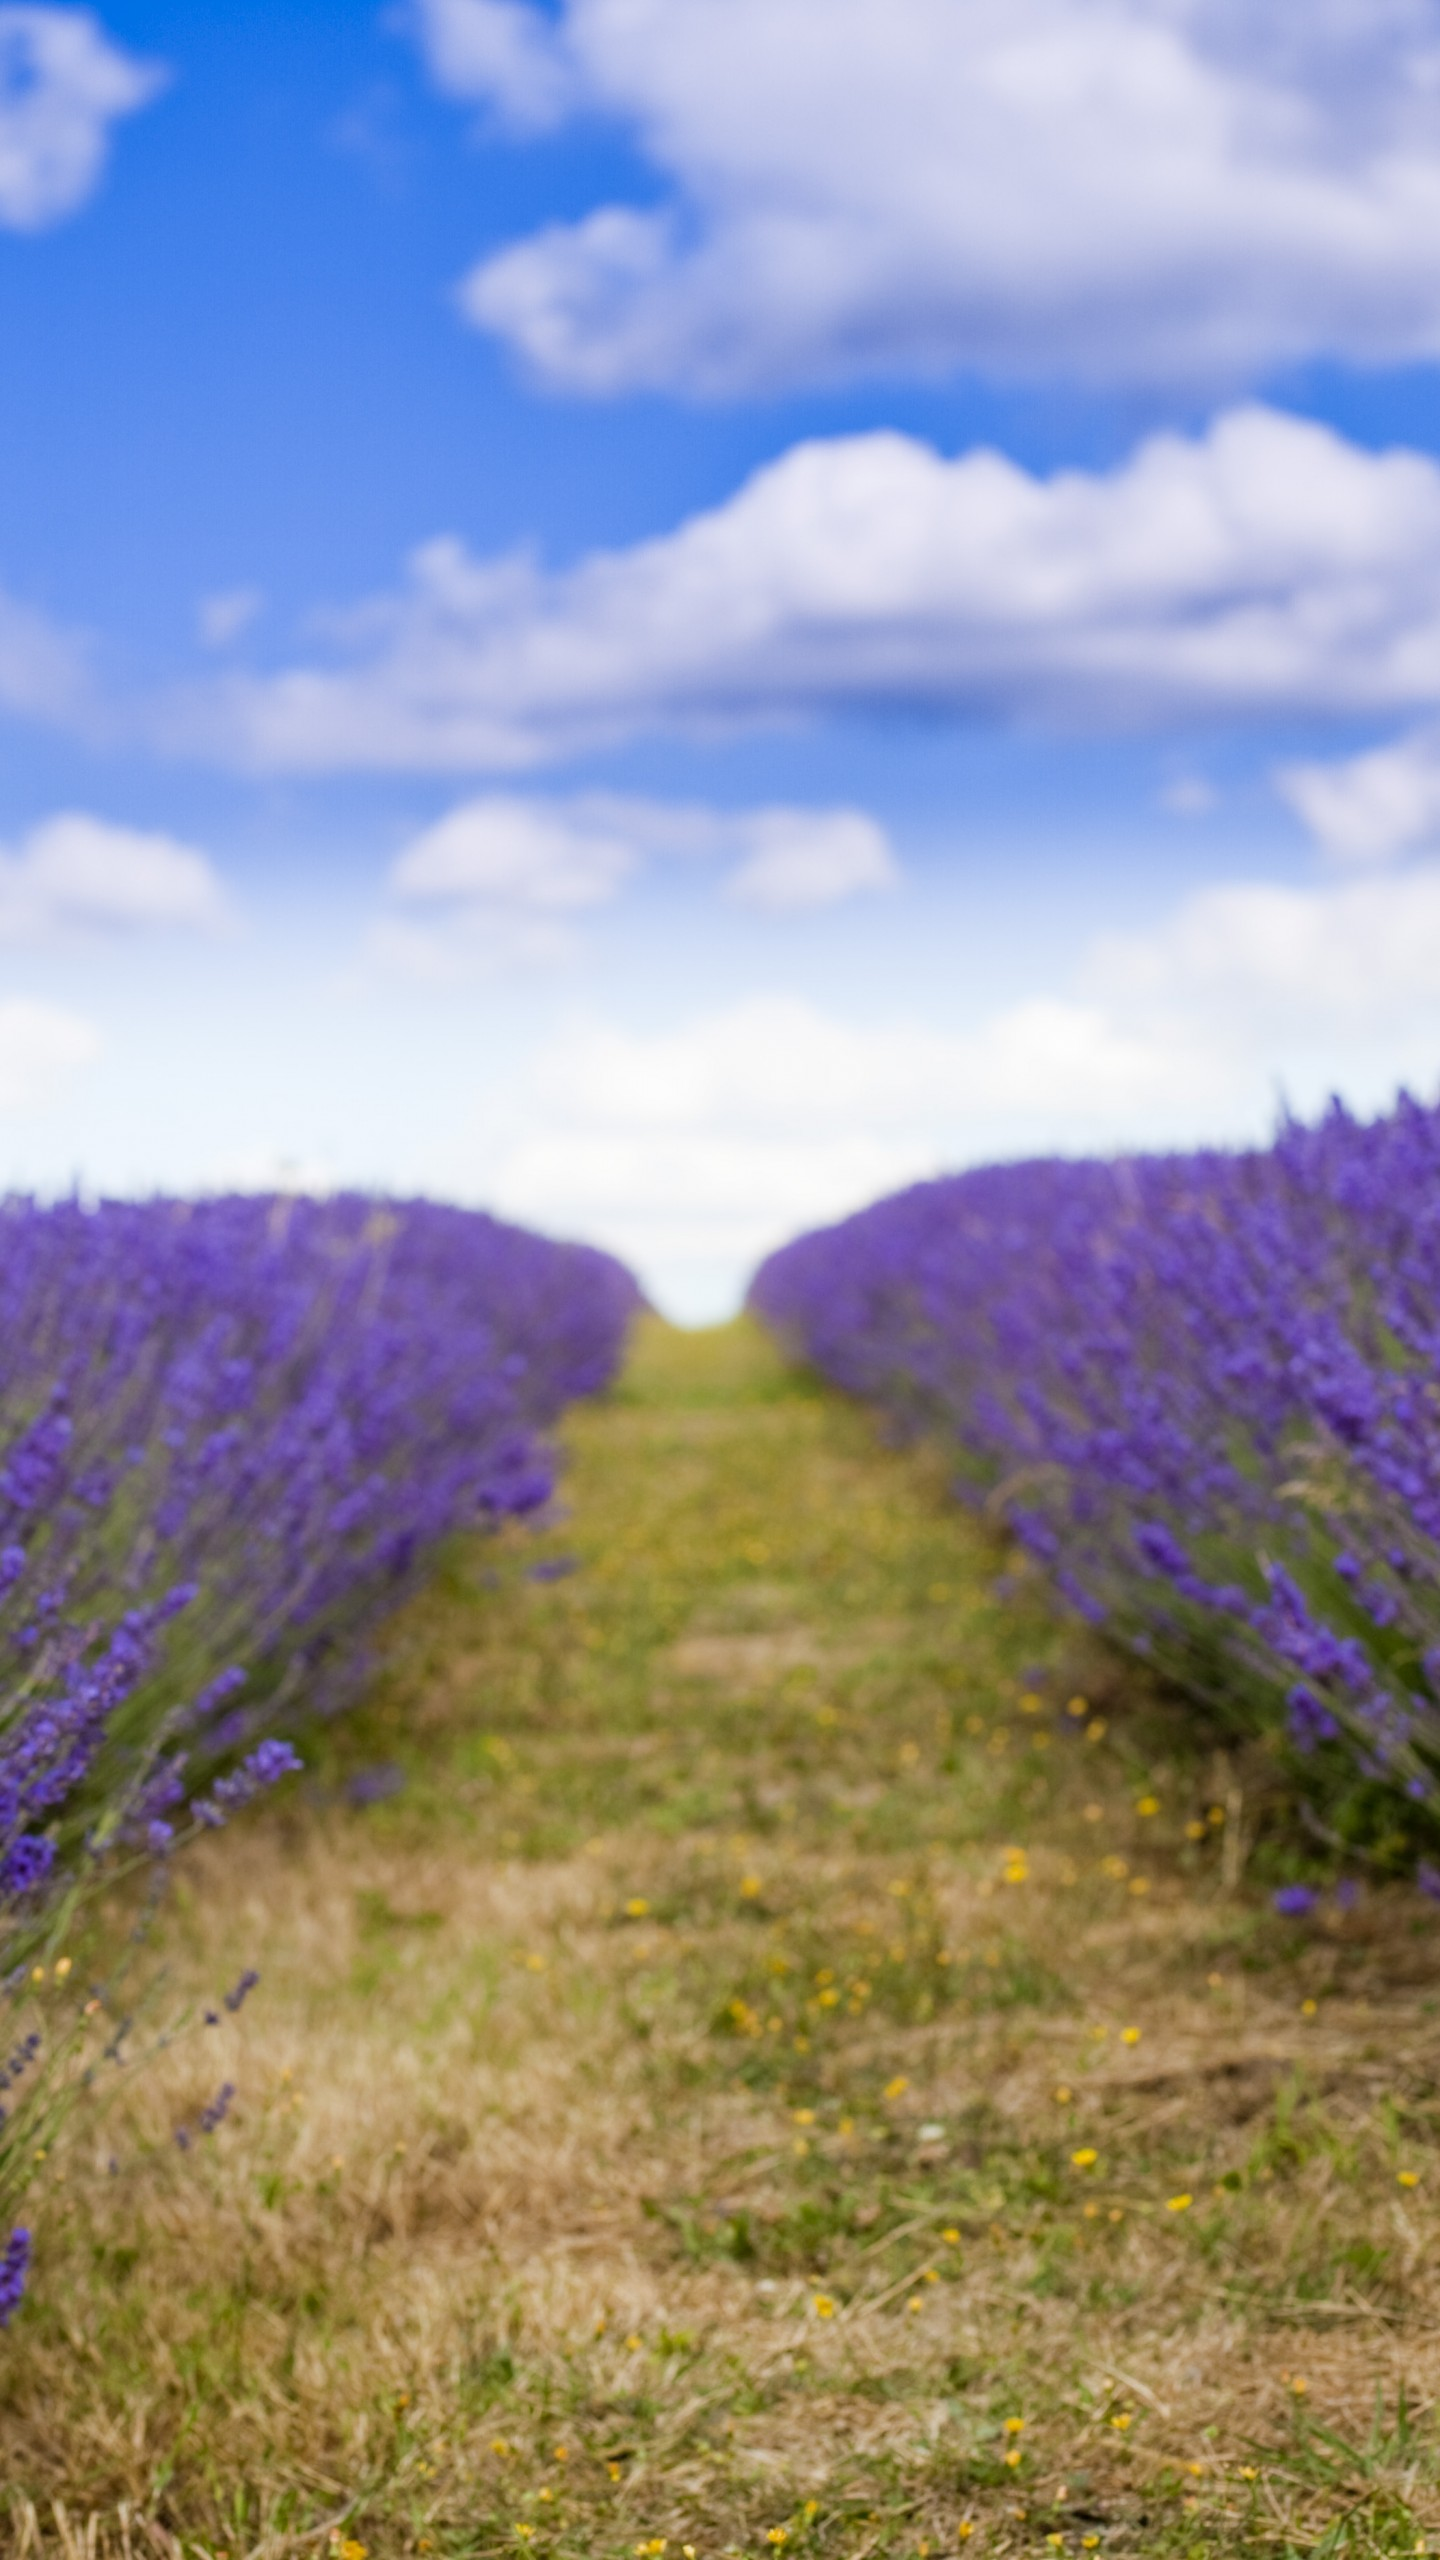 Wallpaper Lavender 5k 4k Wallpaper 8k Field Flowers